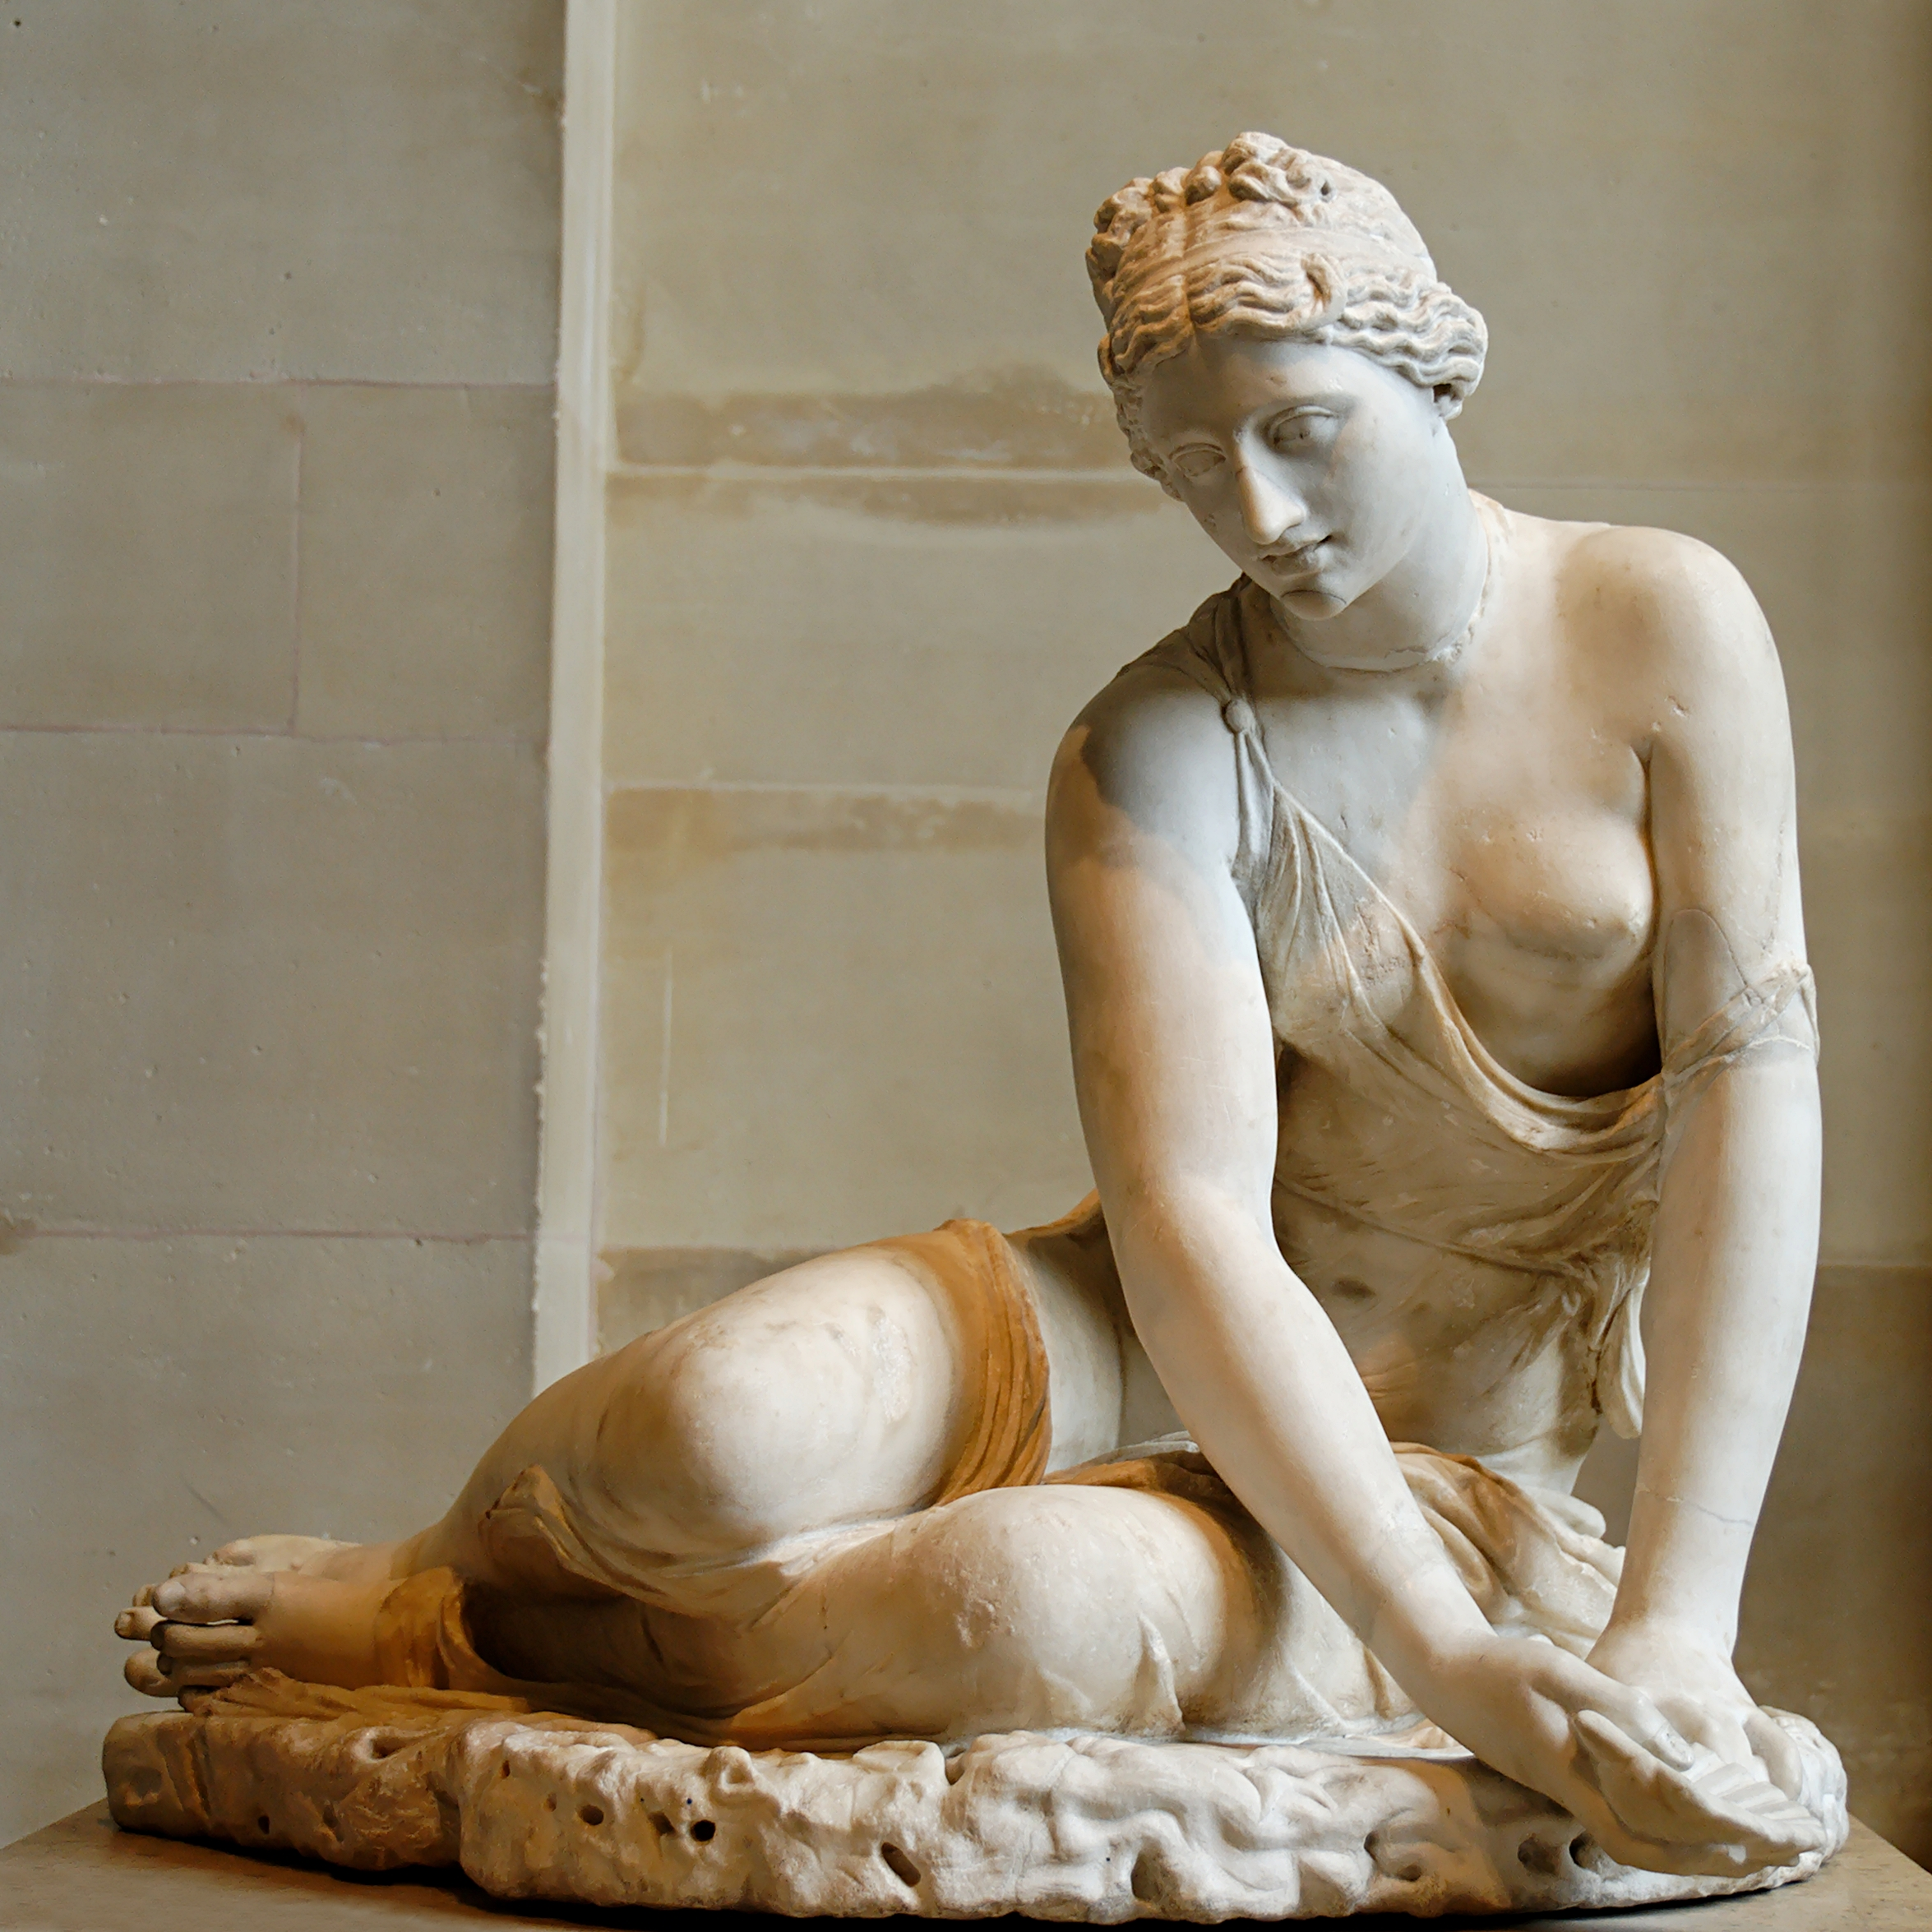 https://upload.wikimedia.org/wikipedia/commons/1/10/Nymph_shell_Louvre_Ma18.jpg